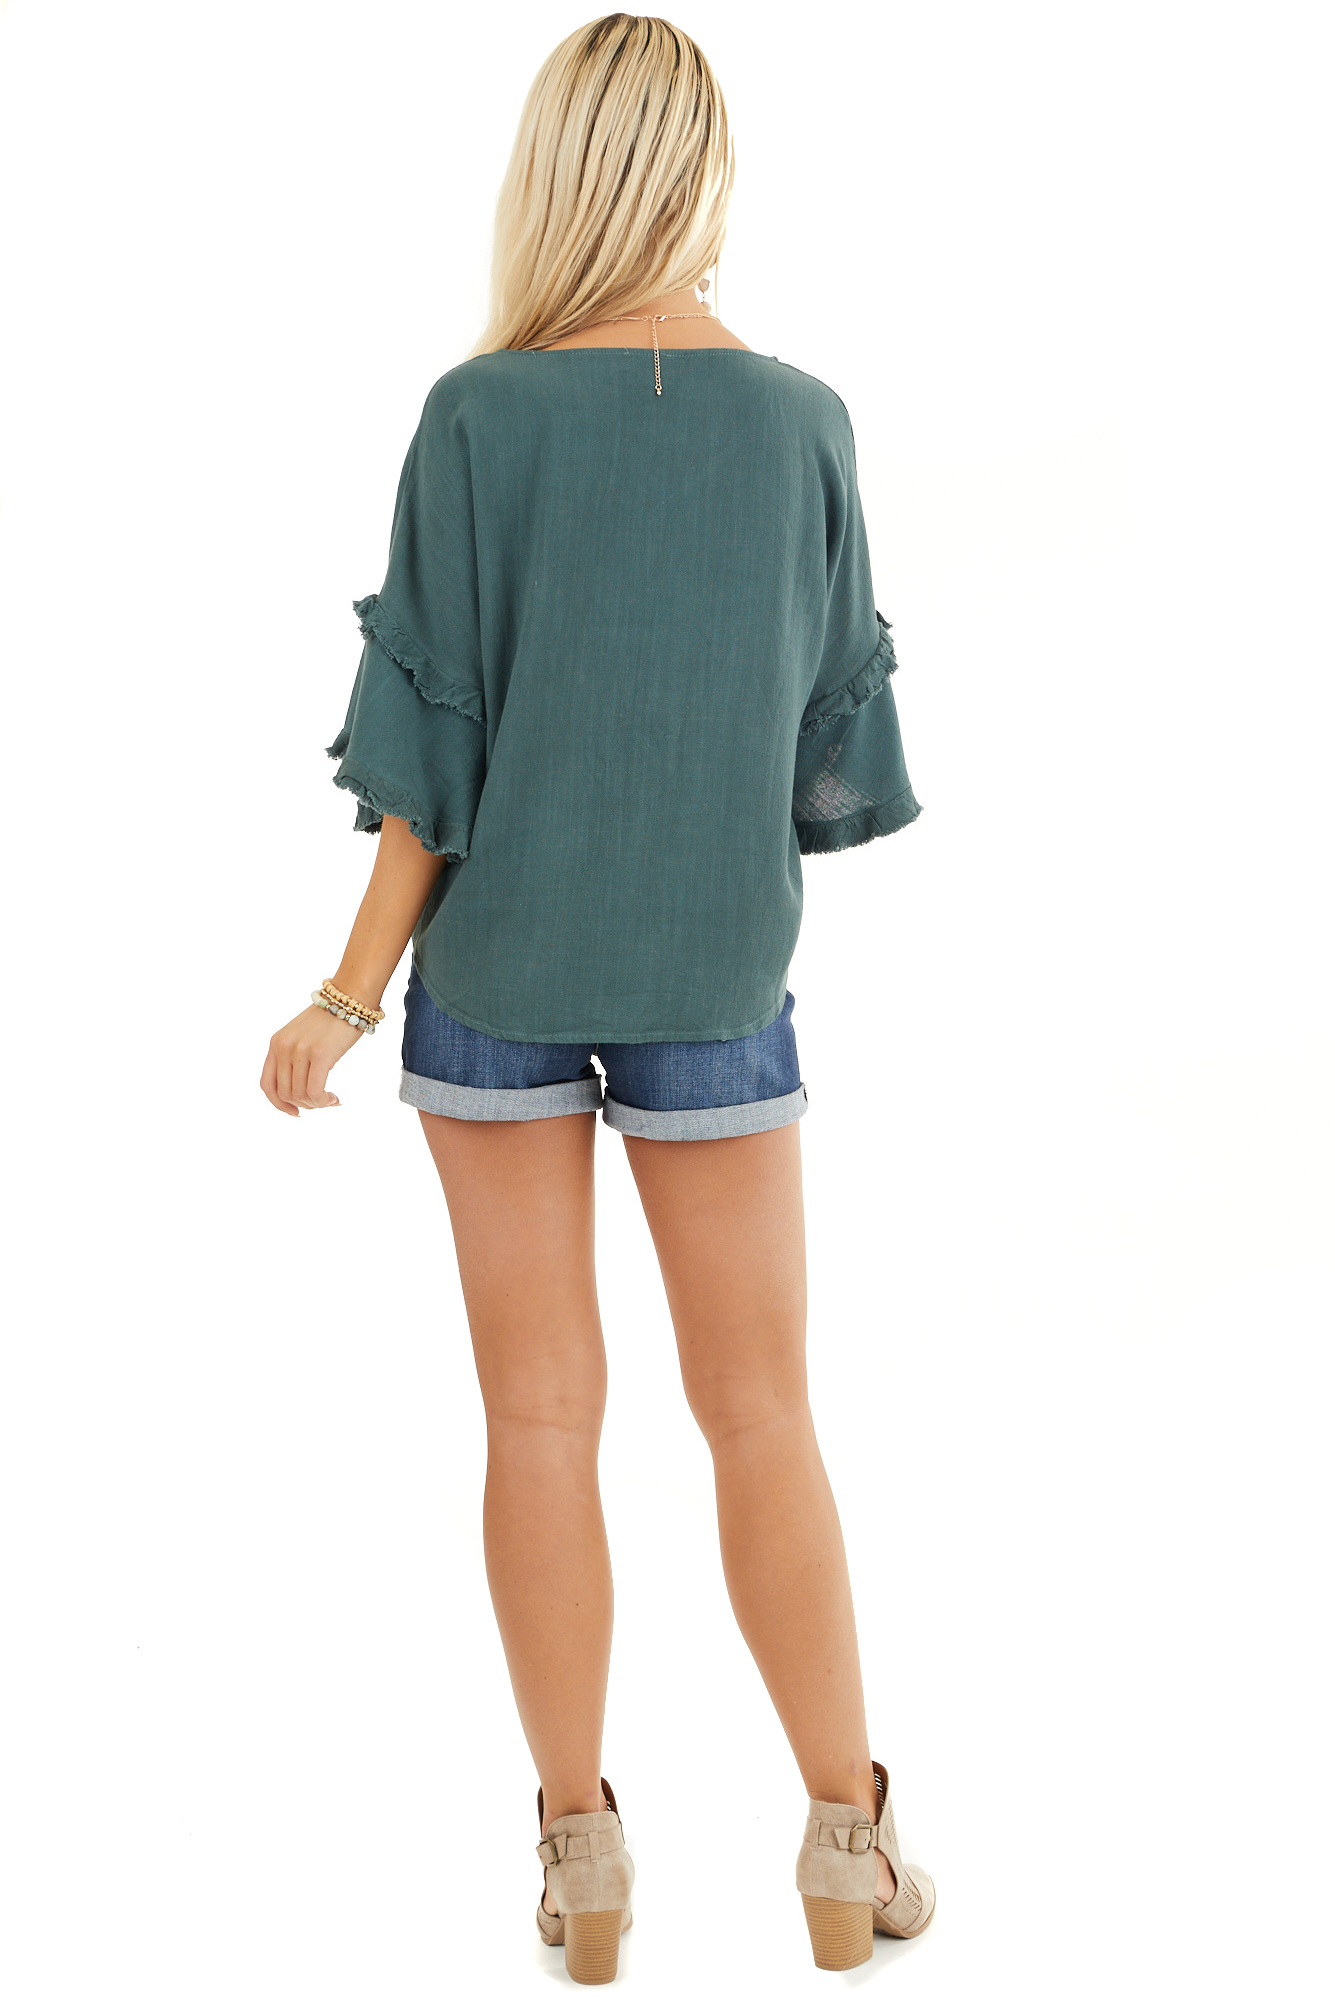 Forest Green Button Up Top with Ruffle Sleeves and and Tie back full body